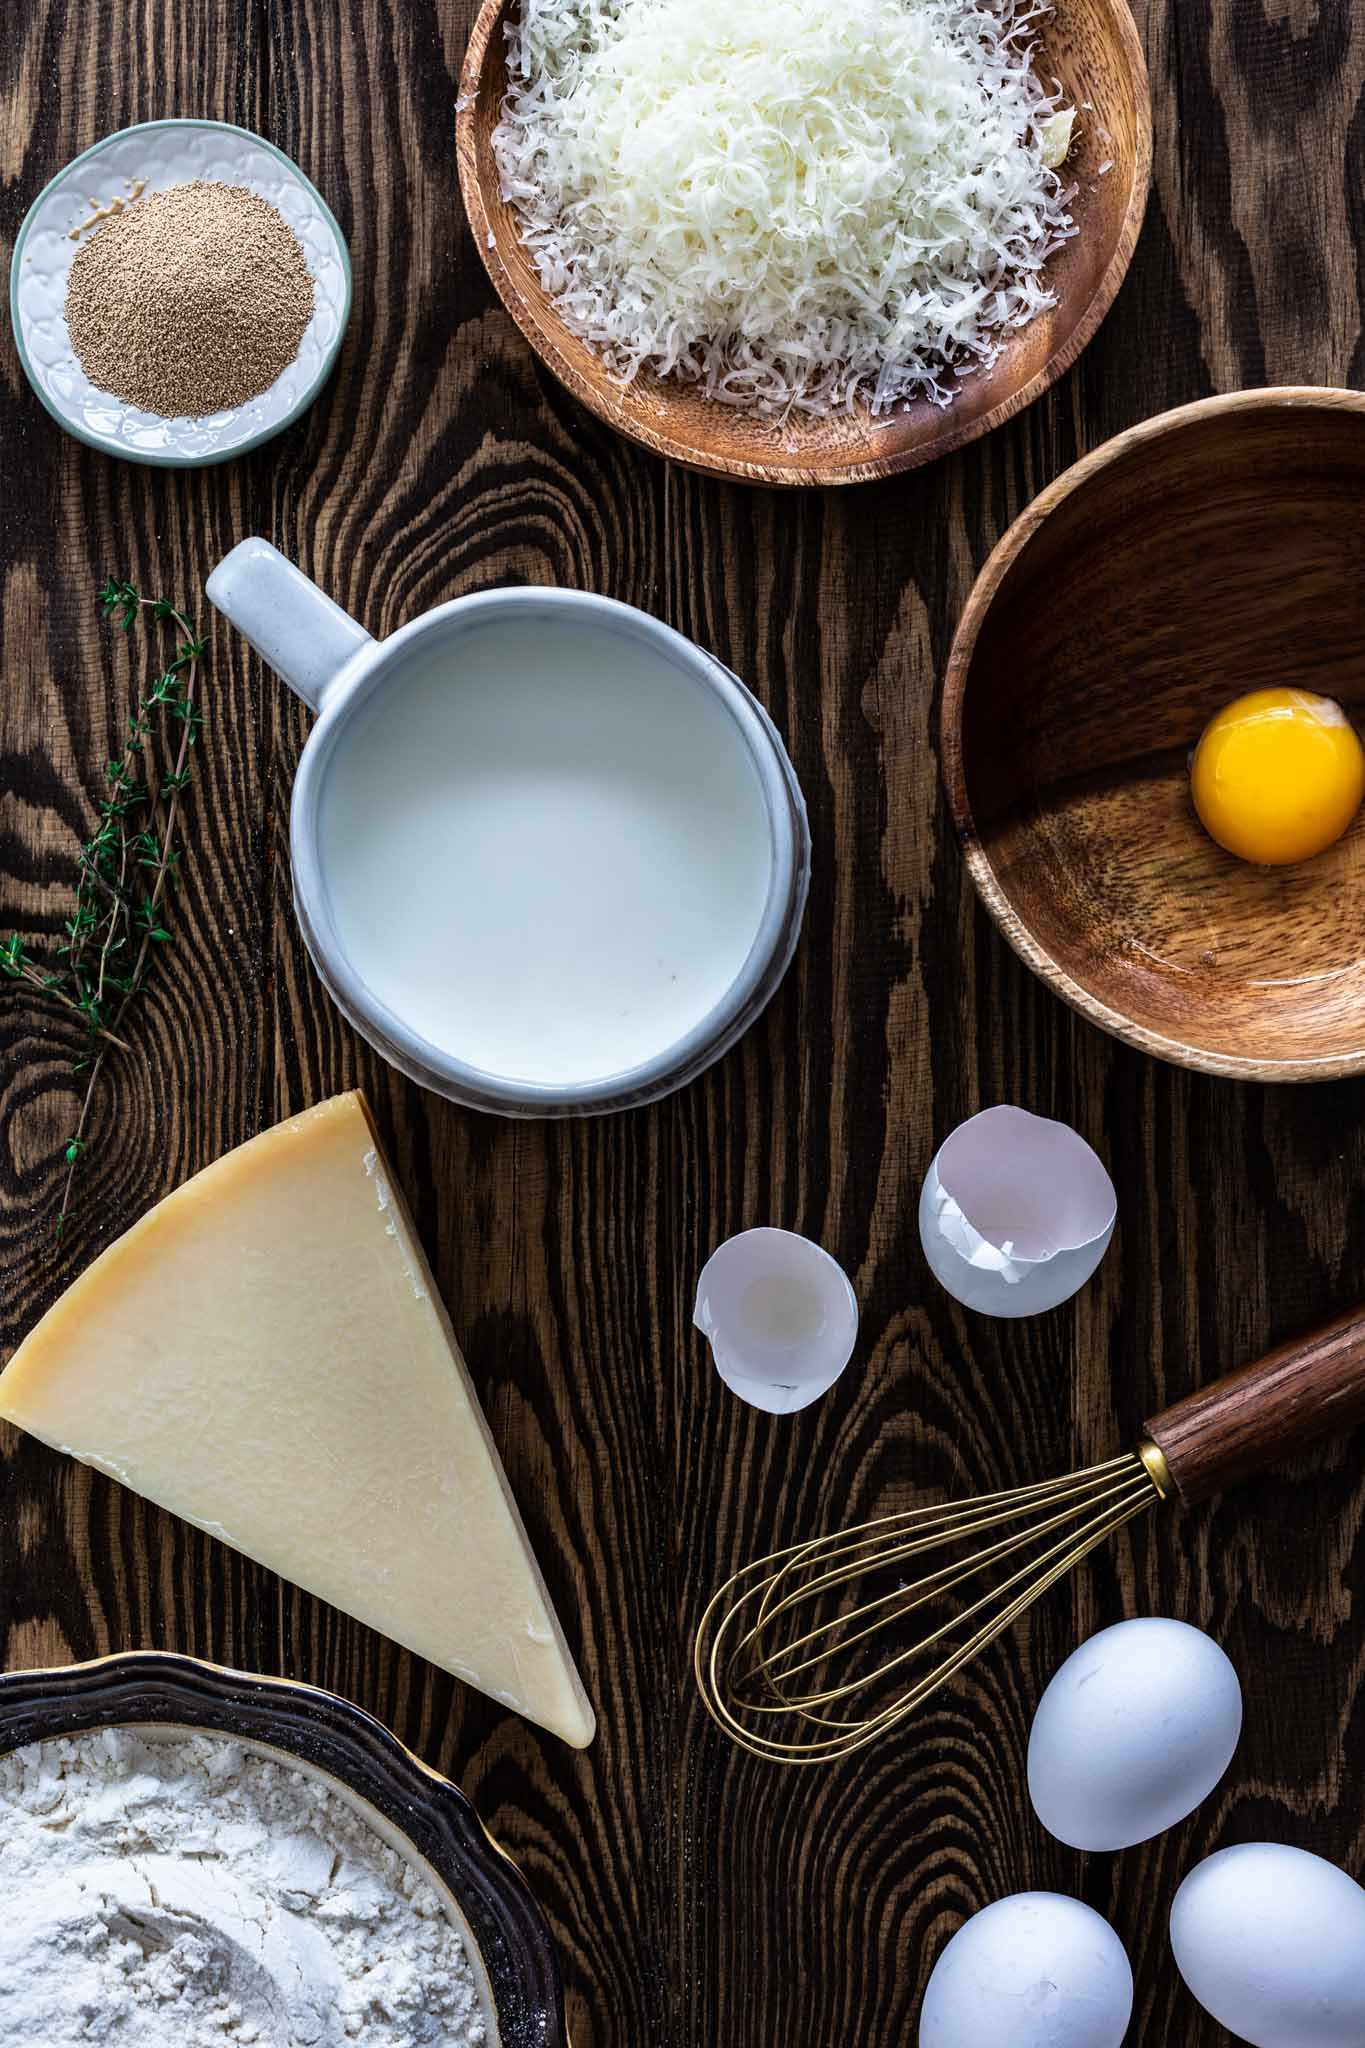 Ingredients for parmesan savory muffins